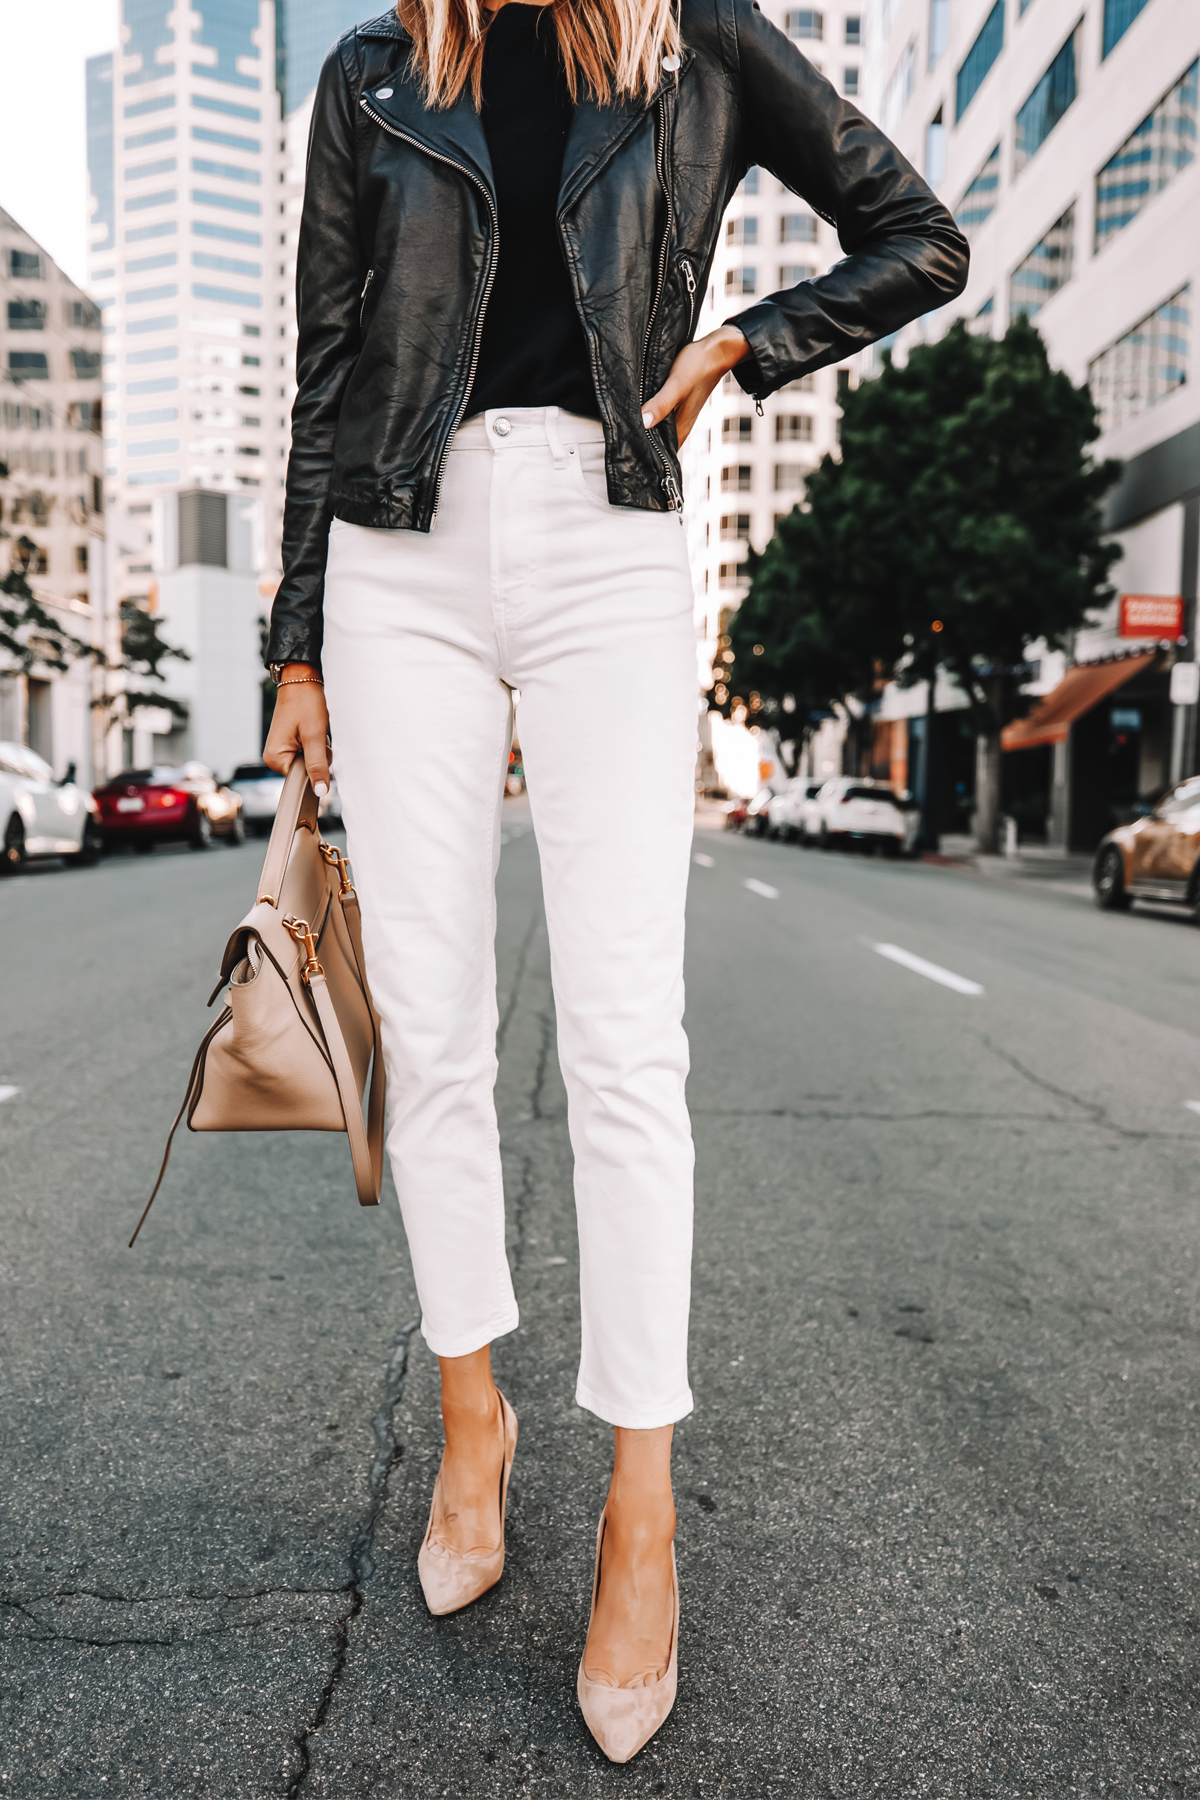 Fashion Jackson Wearing Madewell Black Leather Jacket Everlane White Jeans Nude Pumps